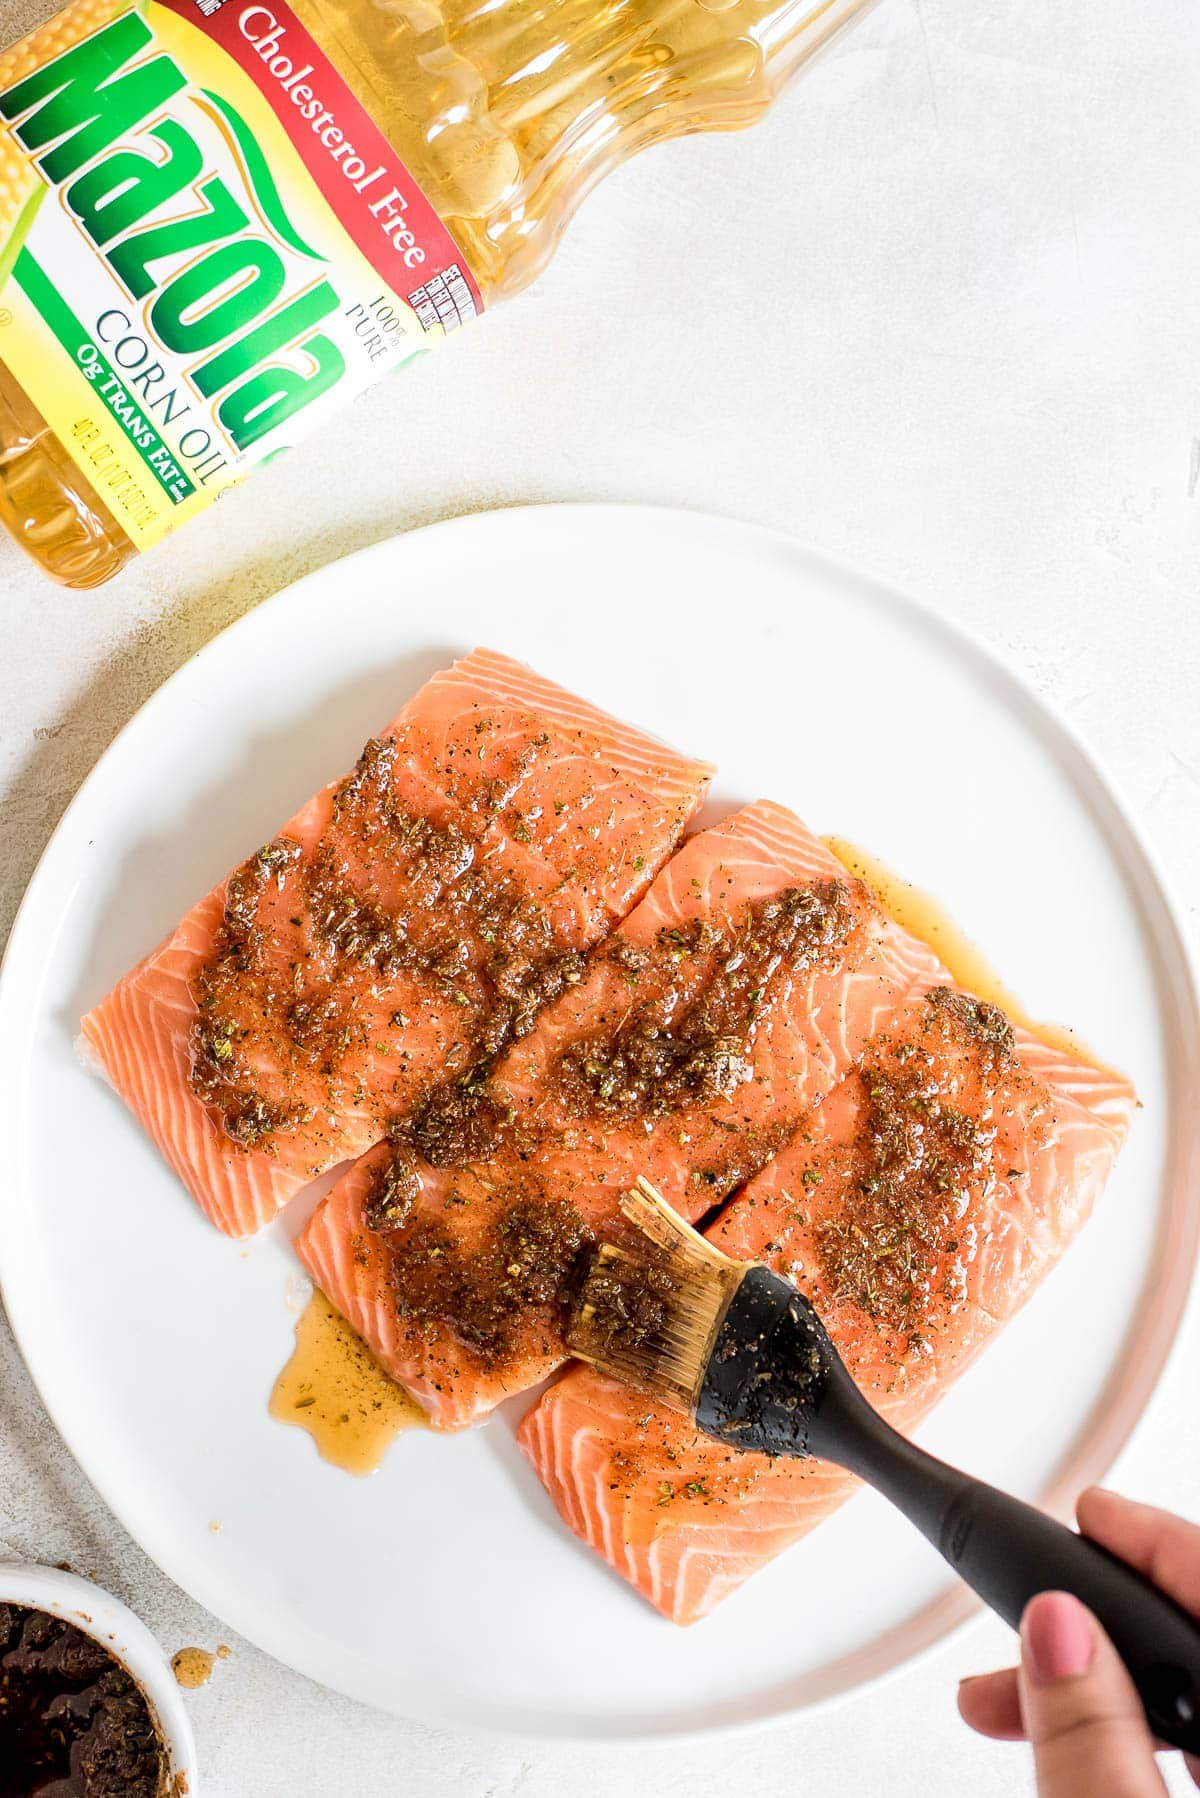 raw salmon being coated in marinade